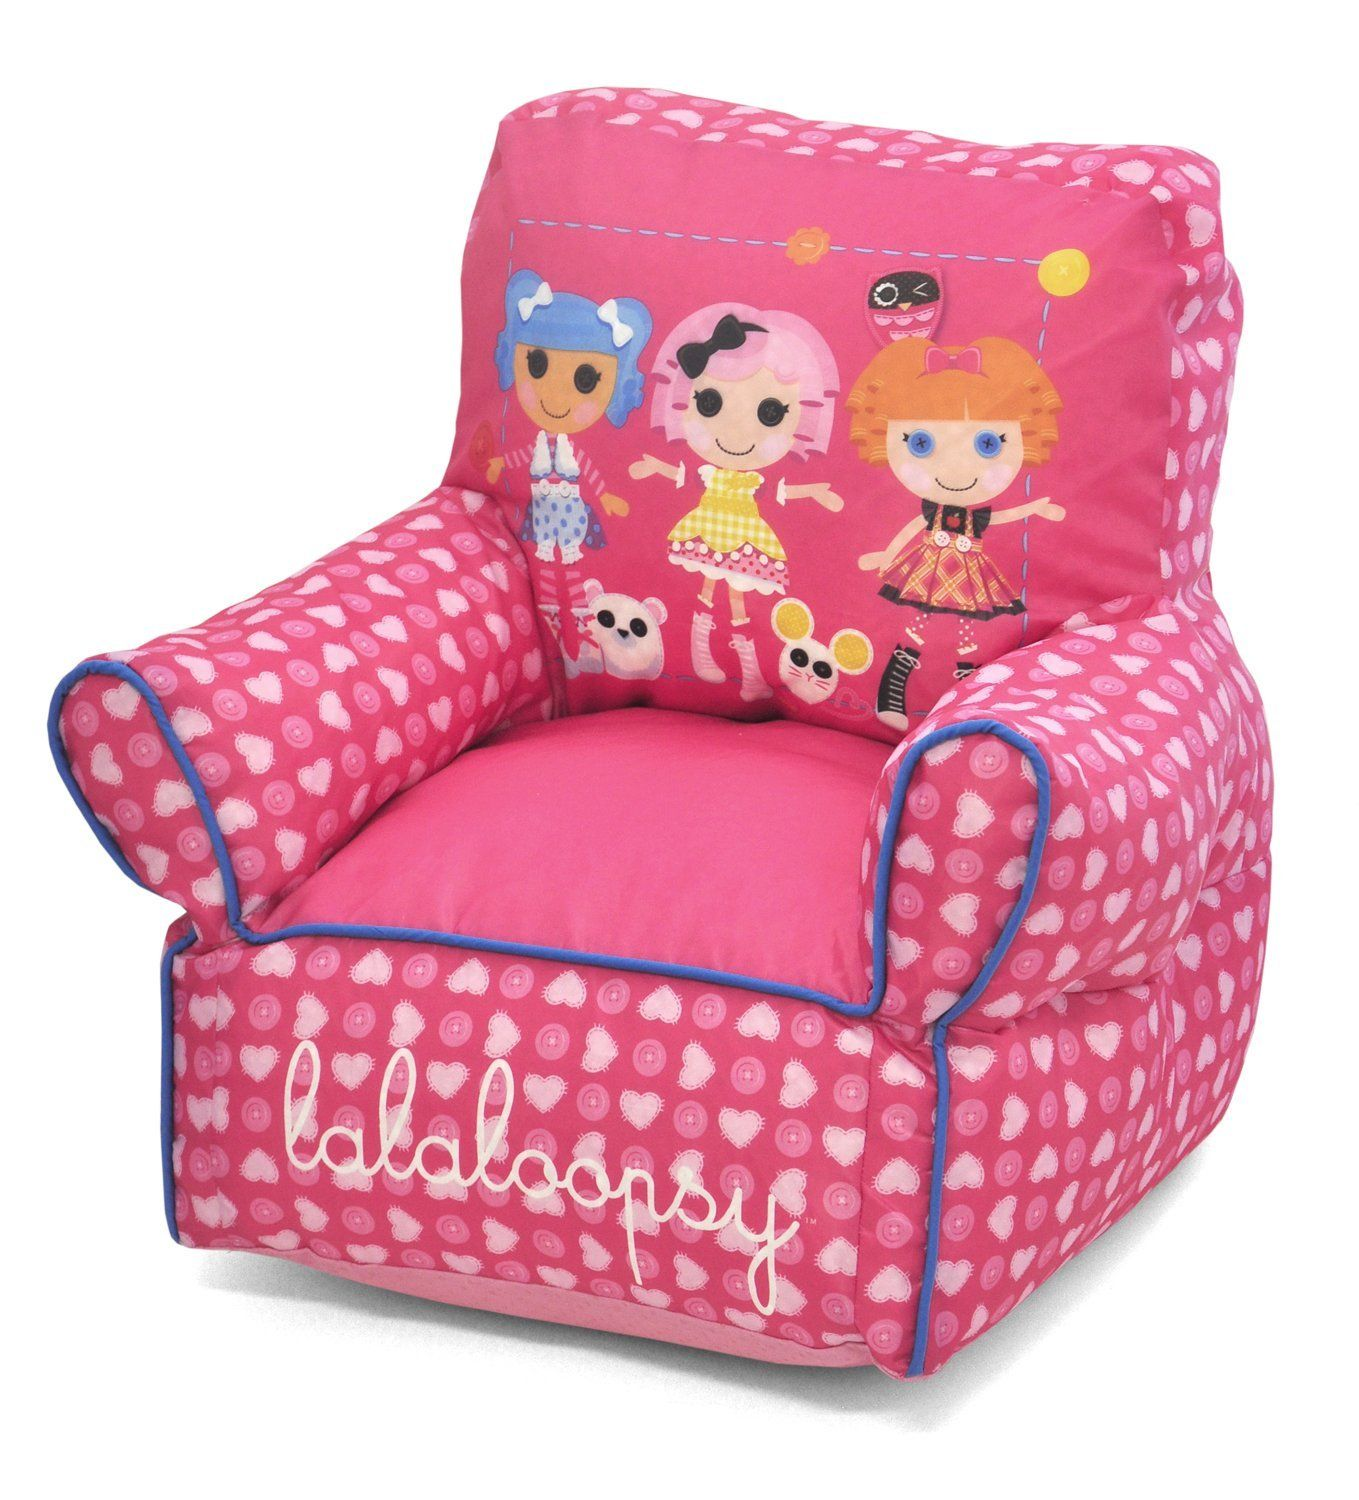 Lalaloopsy Bedroom Furniture 17 Best Images About Lalalaloopsy On Pinterest Lalaloopsy